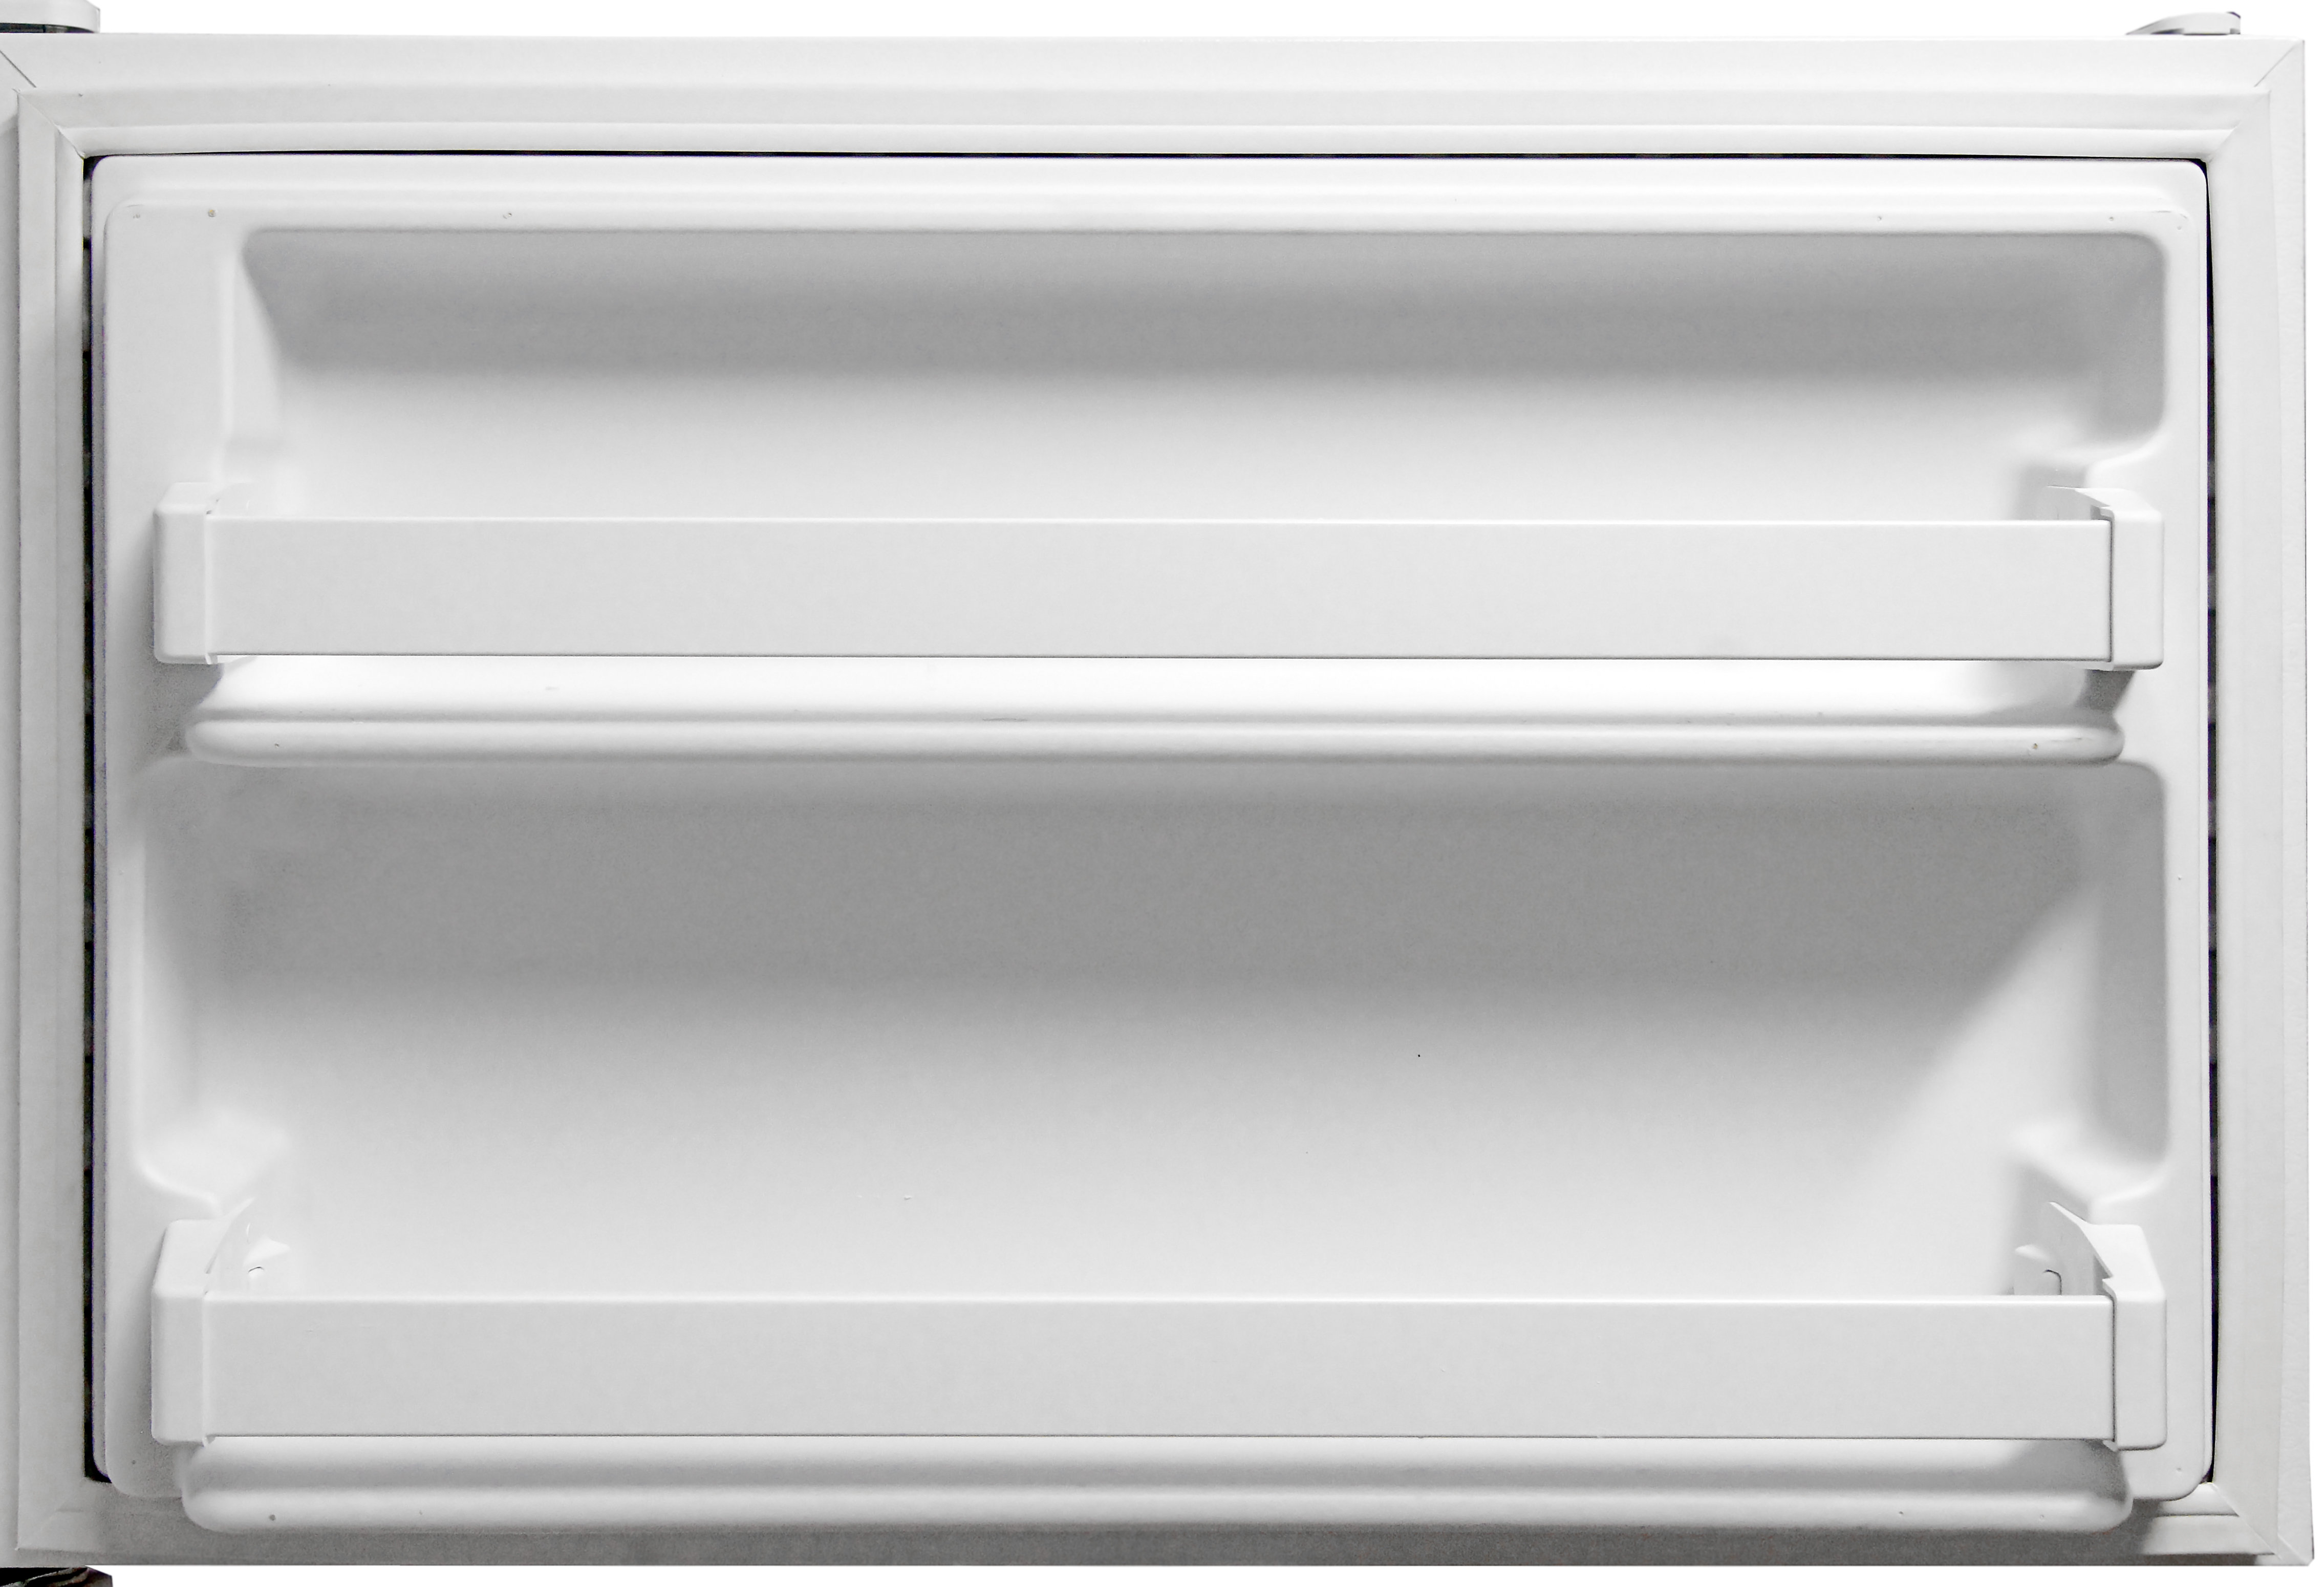 Two identical shelves on the Kenmore 72152's freezer door provide some extra storage.